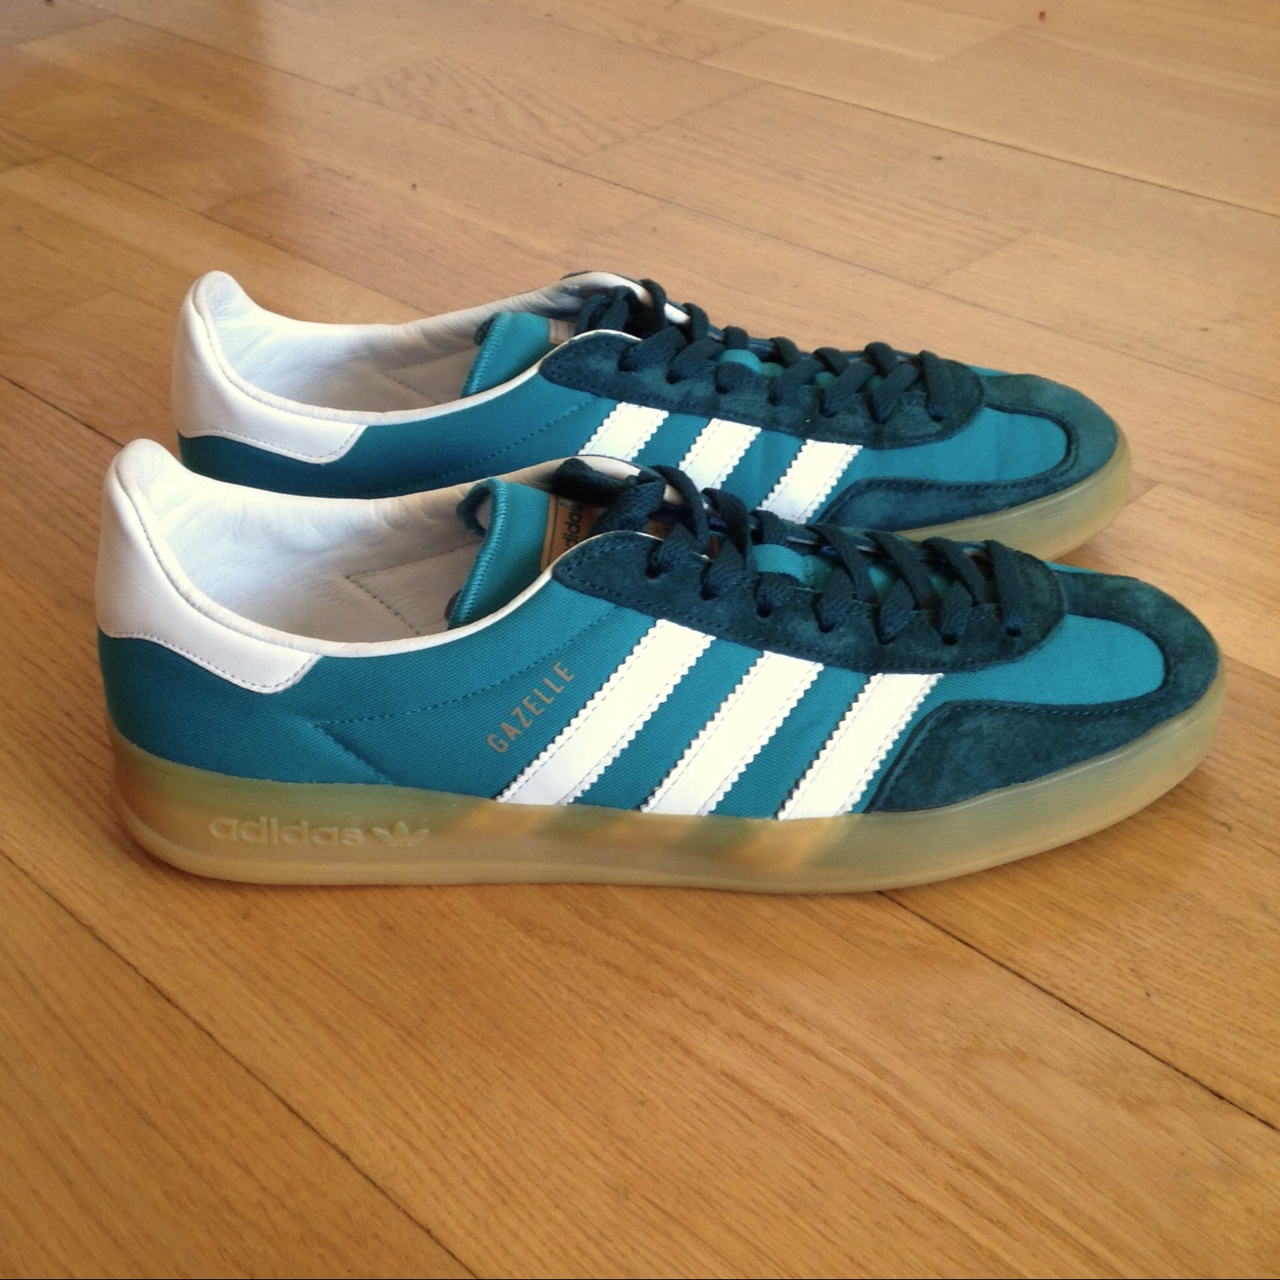 Adidas Originals Gazelle Indoor Soccer Shoes | Deep Depop